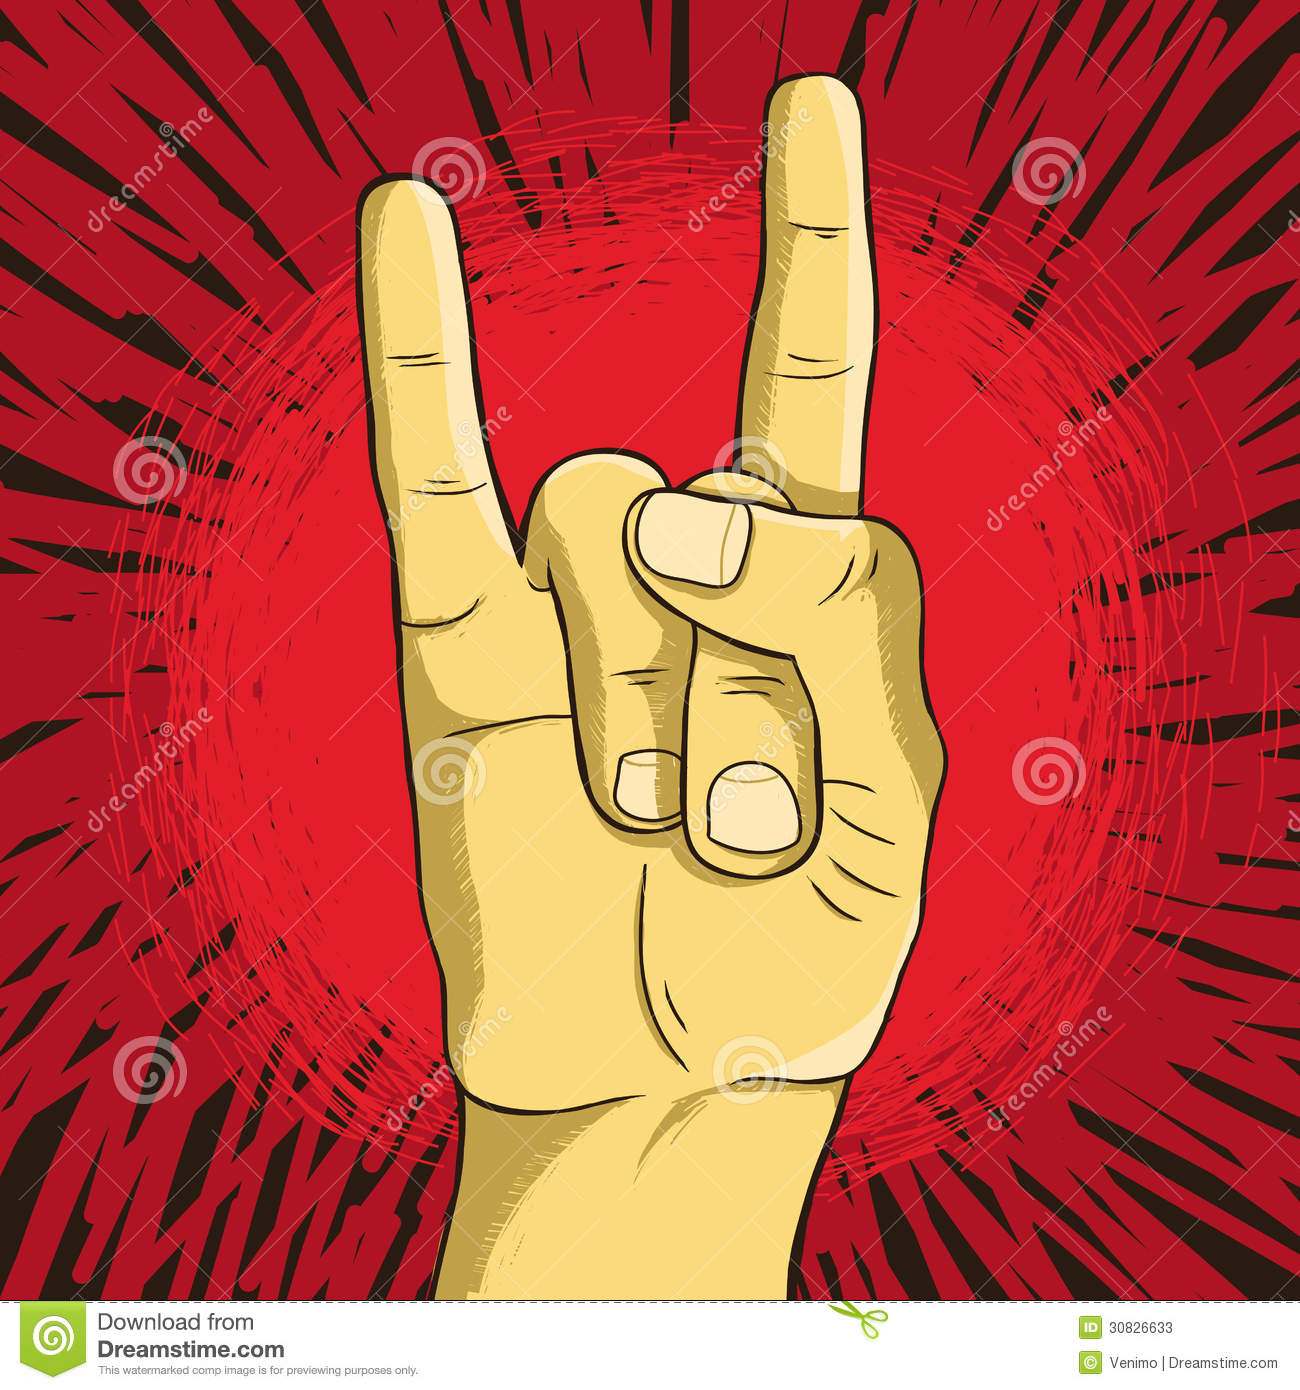 Vector Rock N Roll Symbol Stock Photos - Image: 30826633